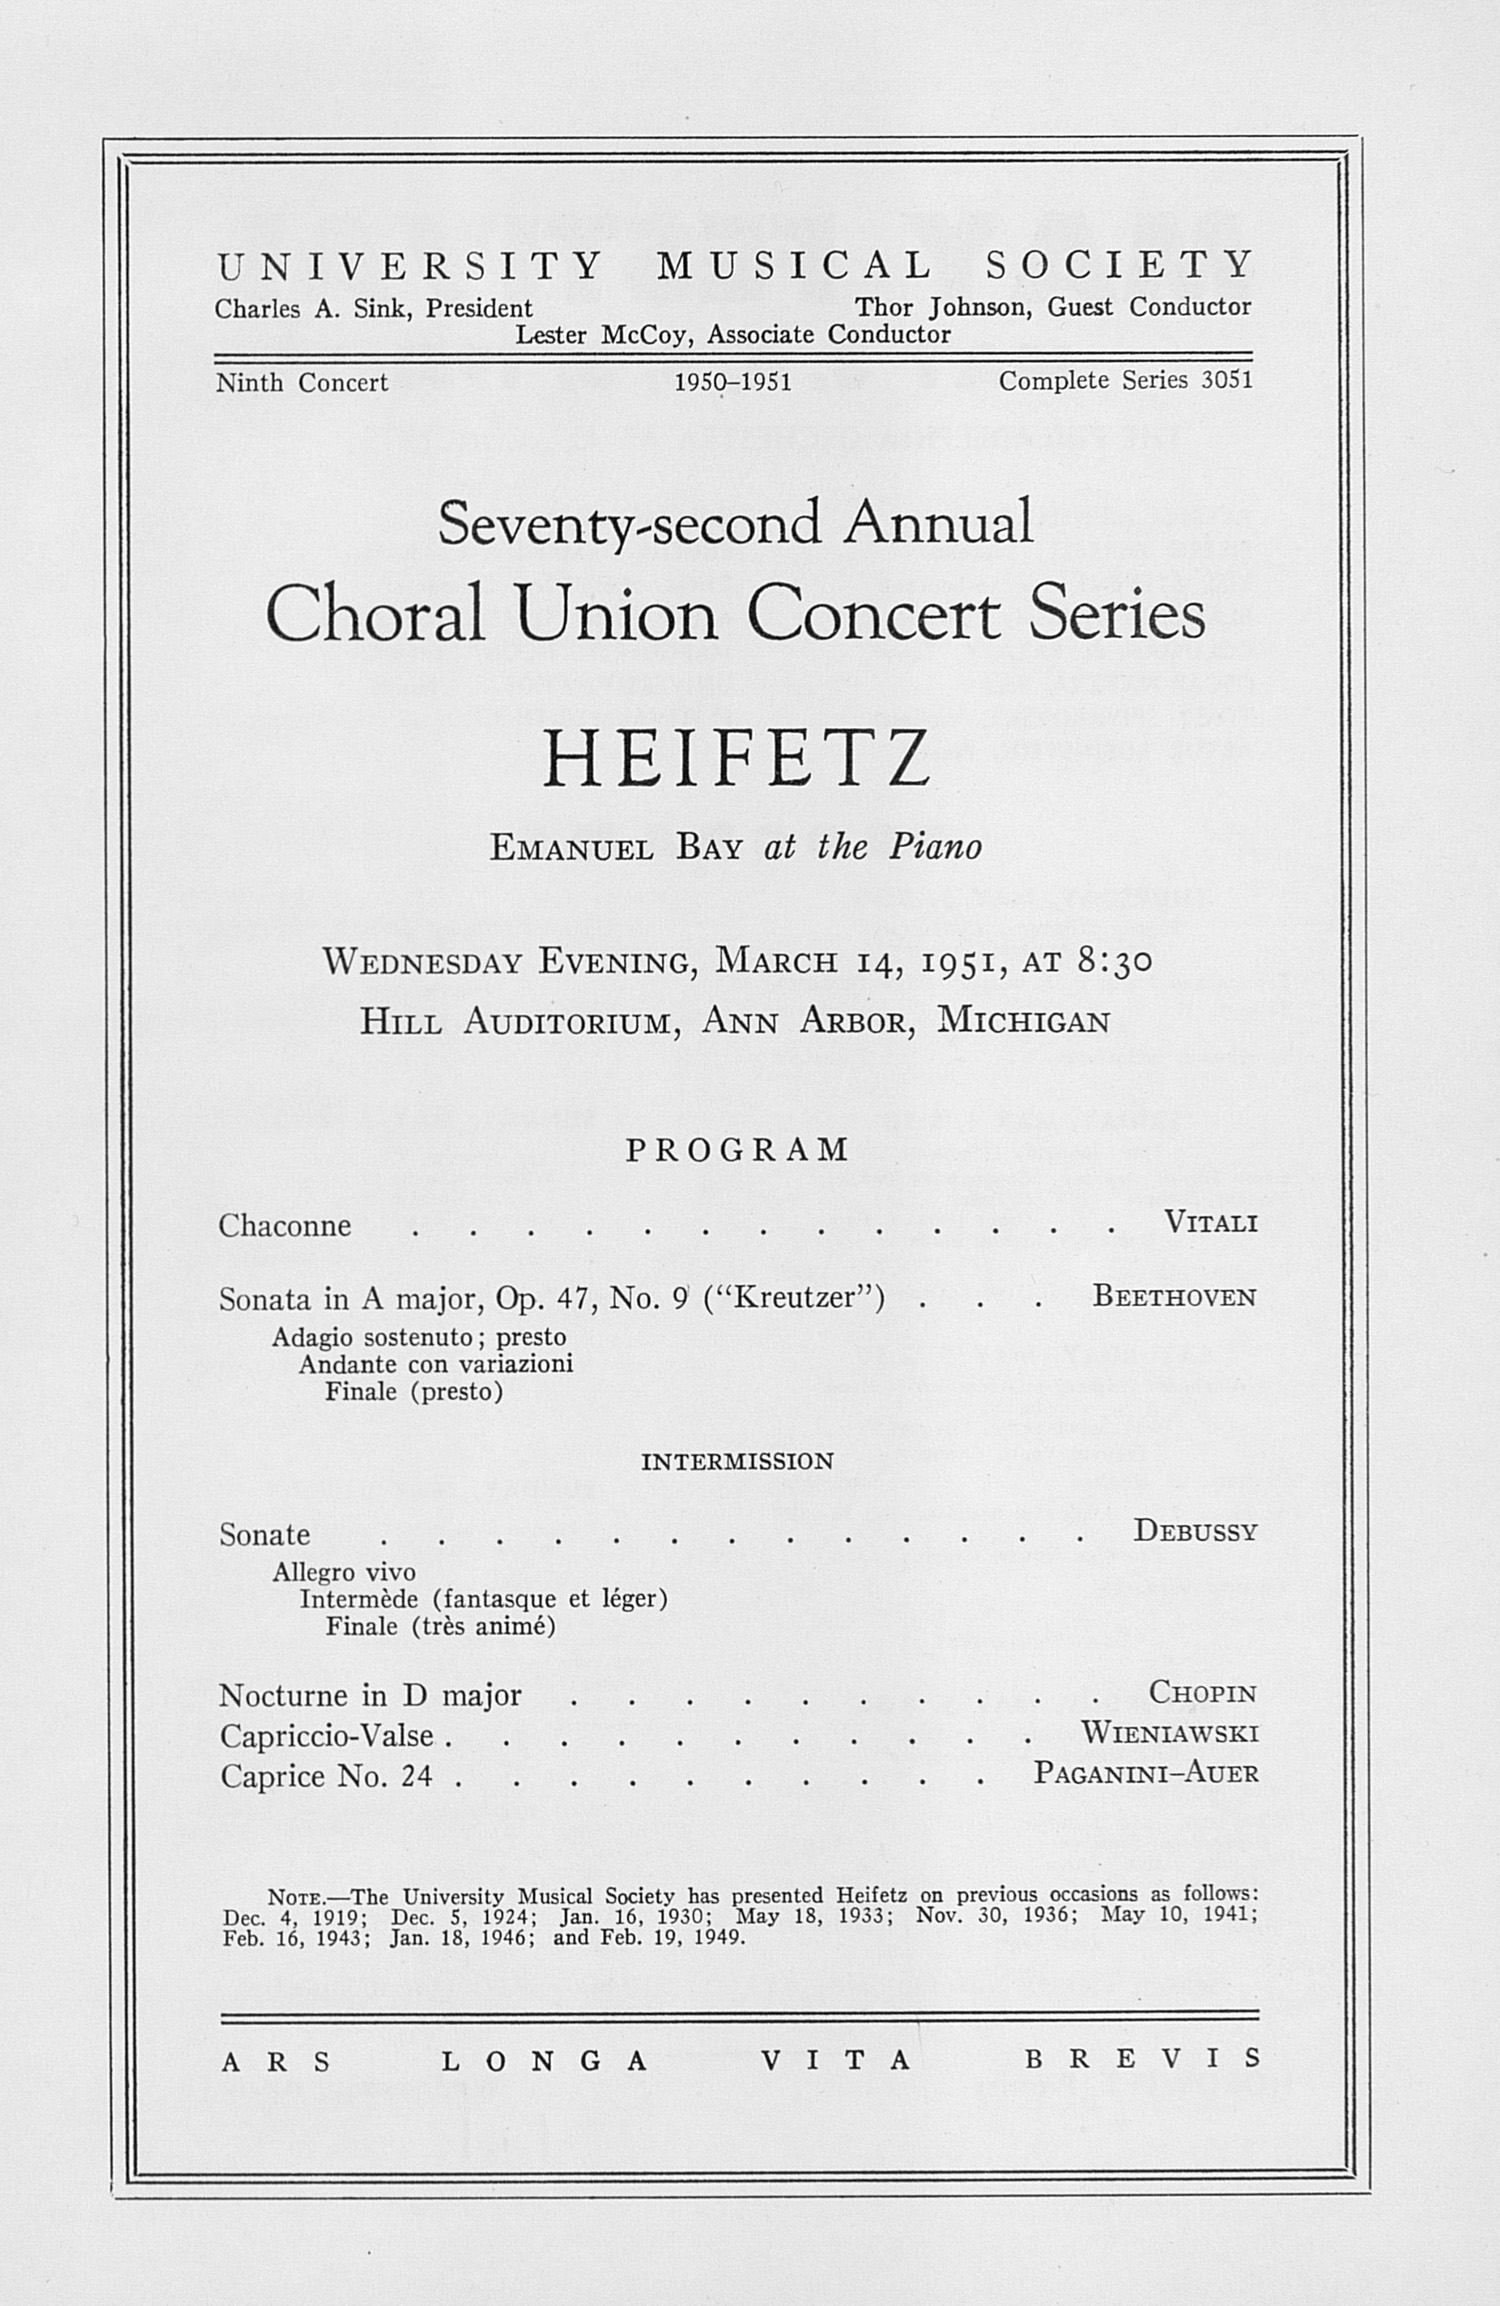 UMS Concert Program, March 14, 1951: Seventy-second Annual Choral Union Concert Series -- Heifetz image